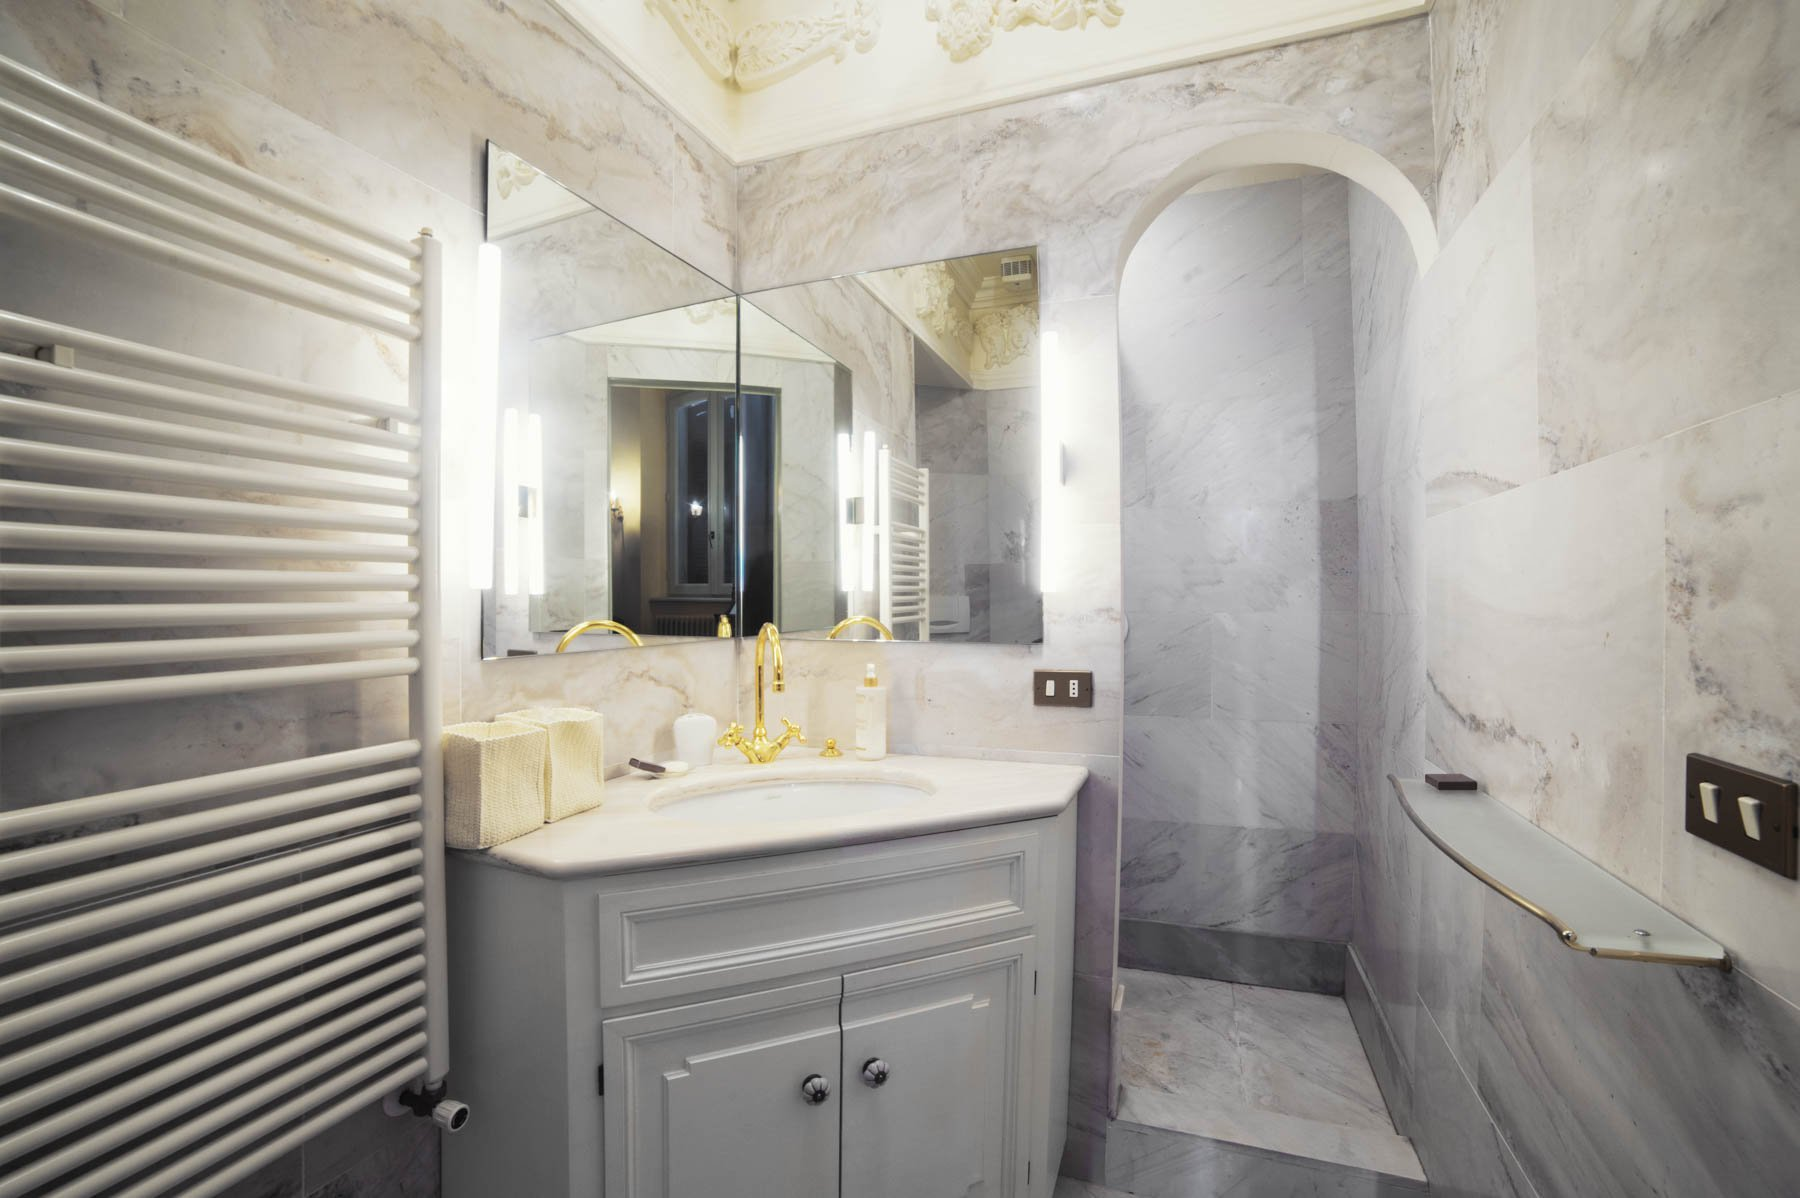 Luxurious apartment for sale in Stresa - restroom